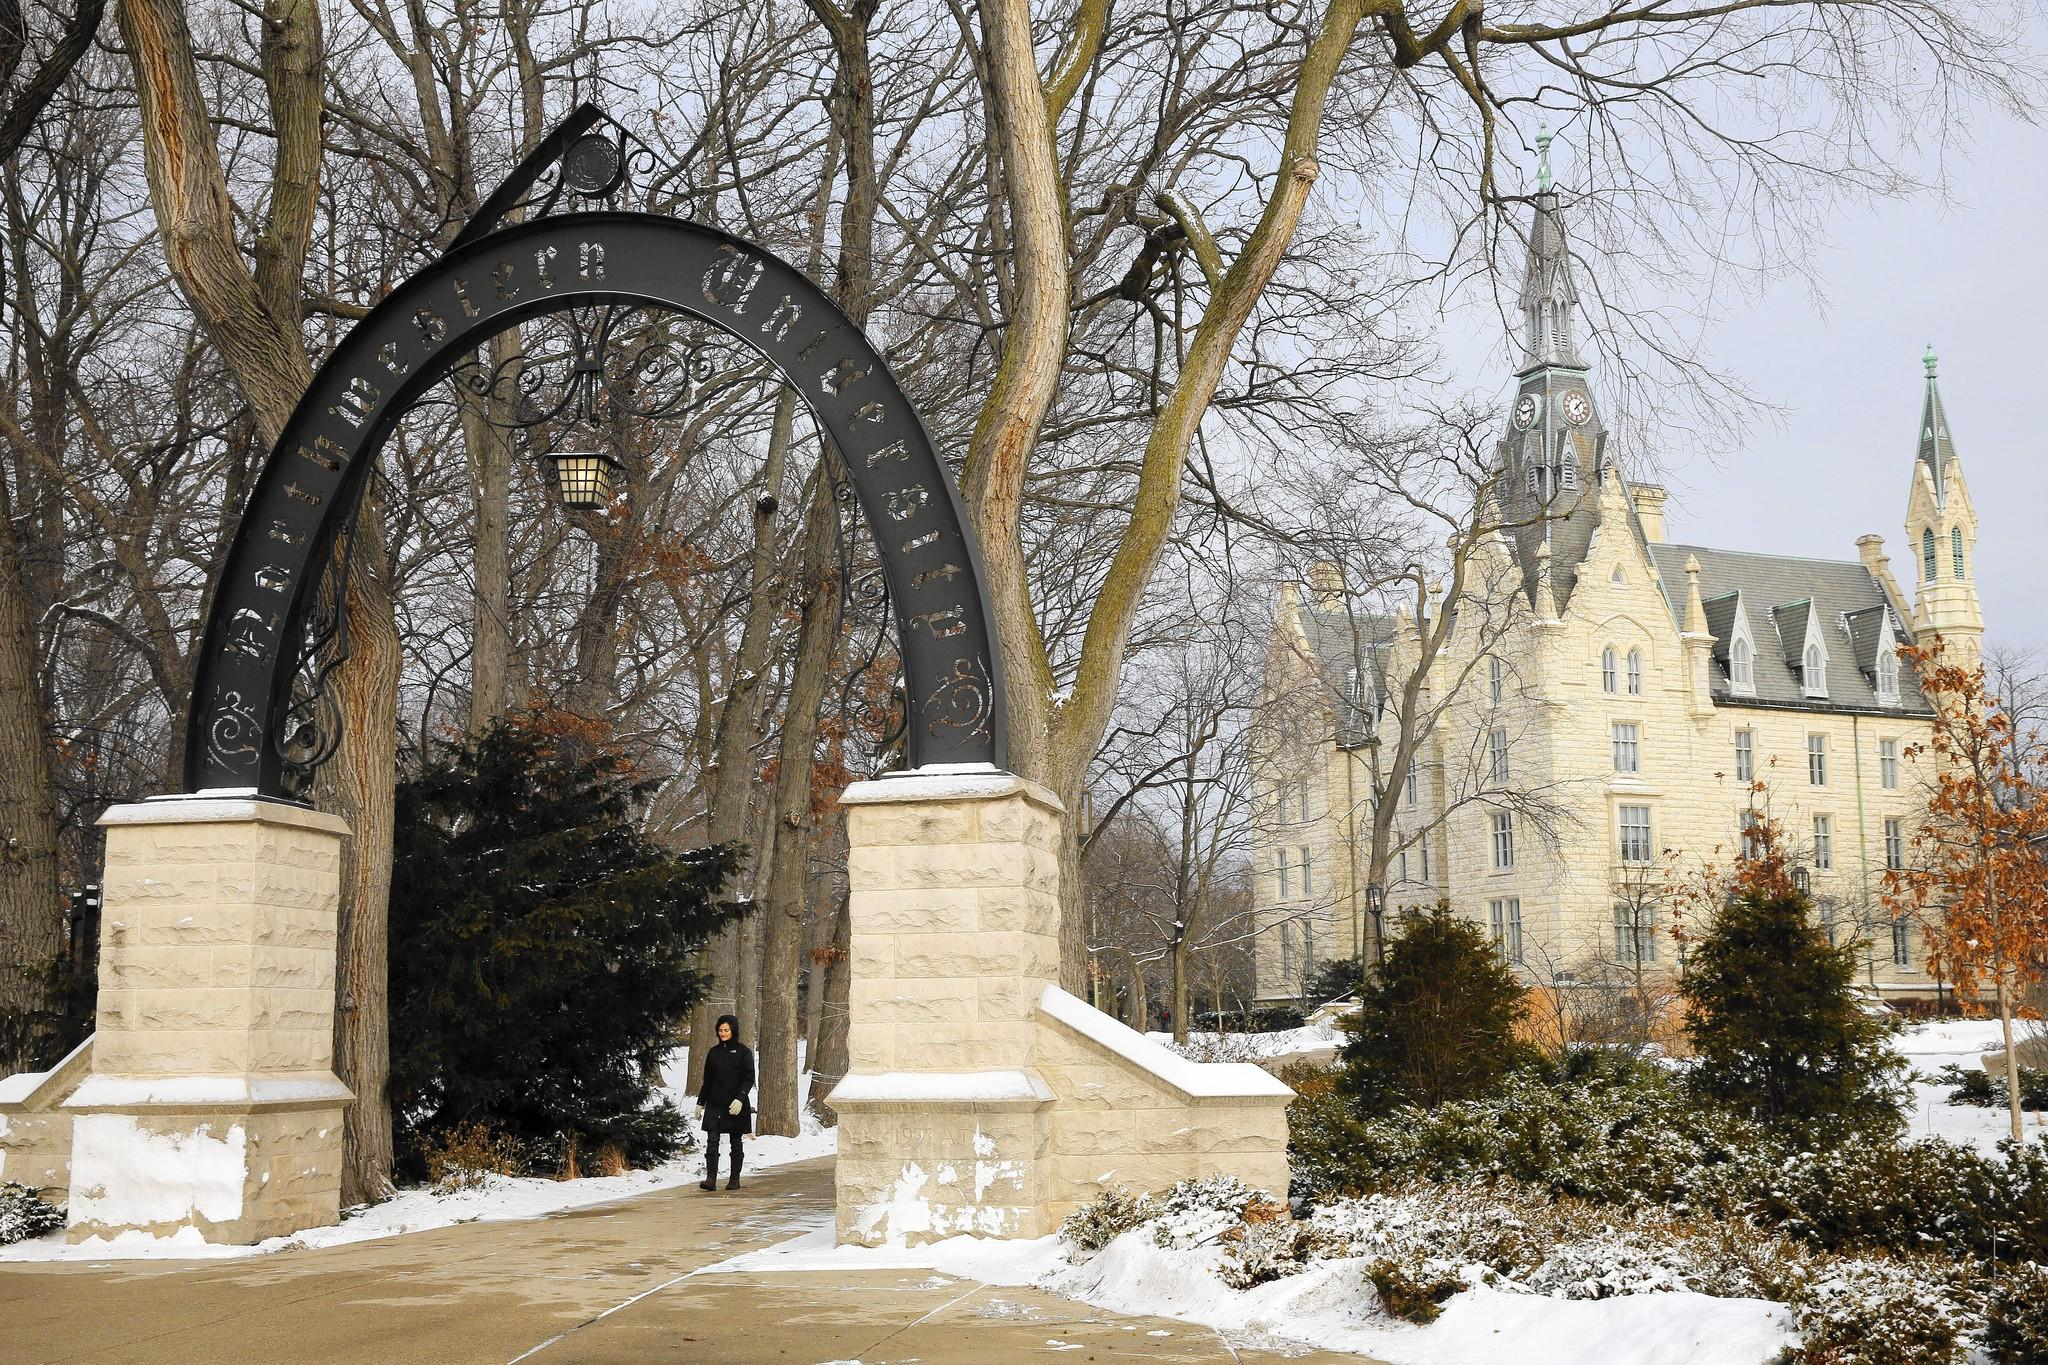 Northwestern University said on Feb. 21 it took seriously an allegation made by a student that a professor sexually attacked her in 2012.